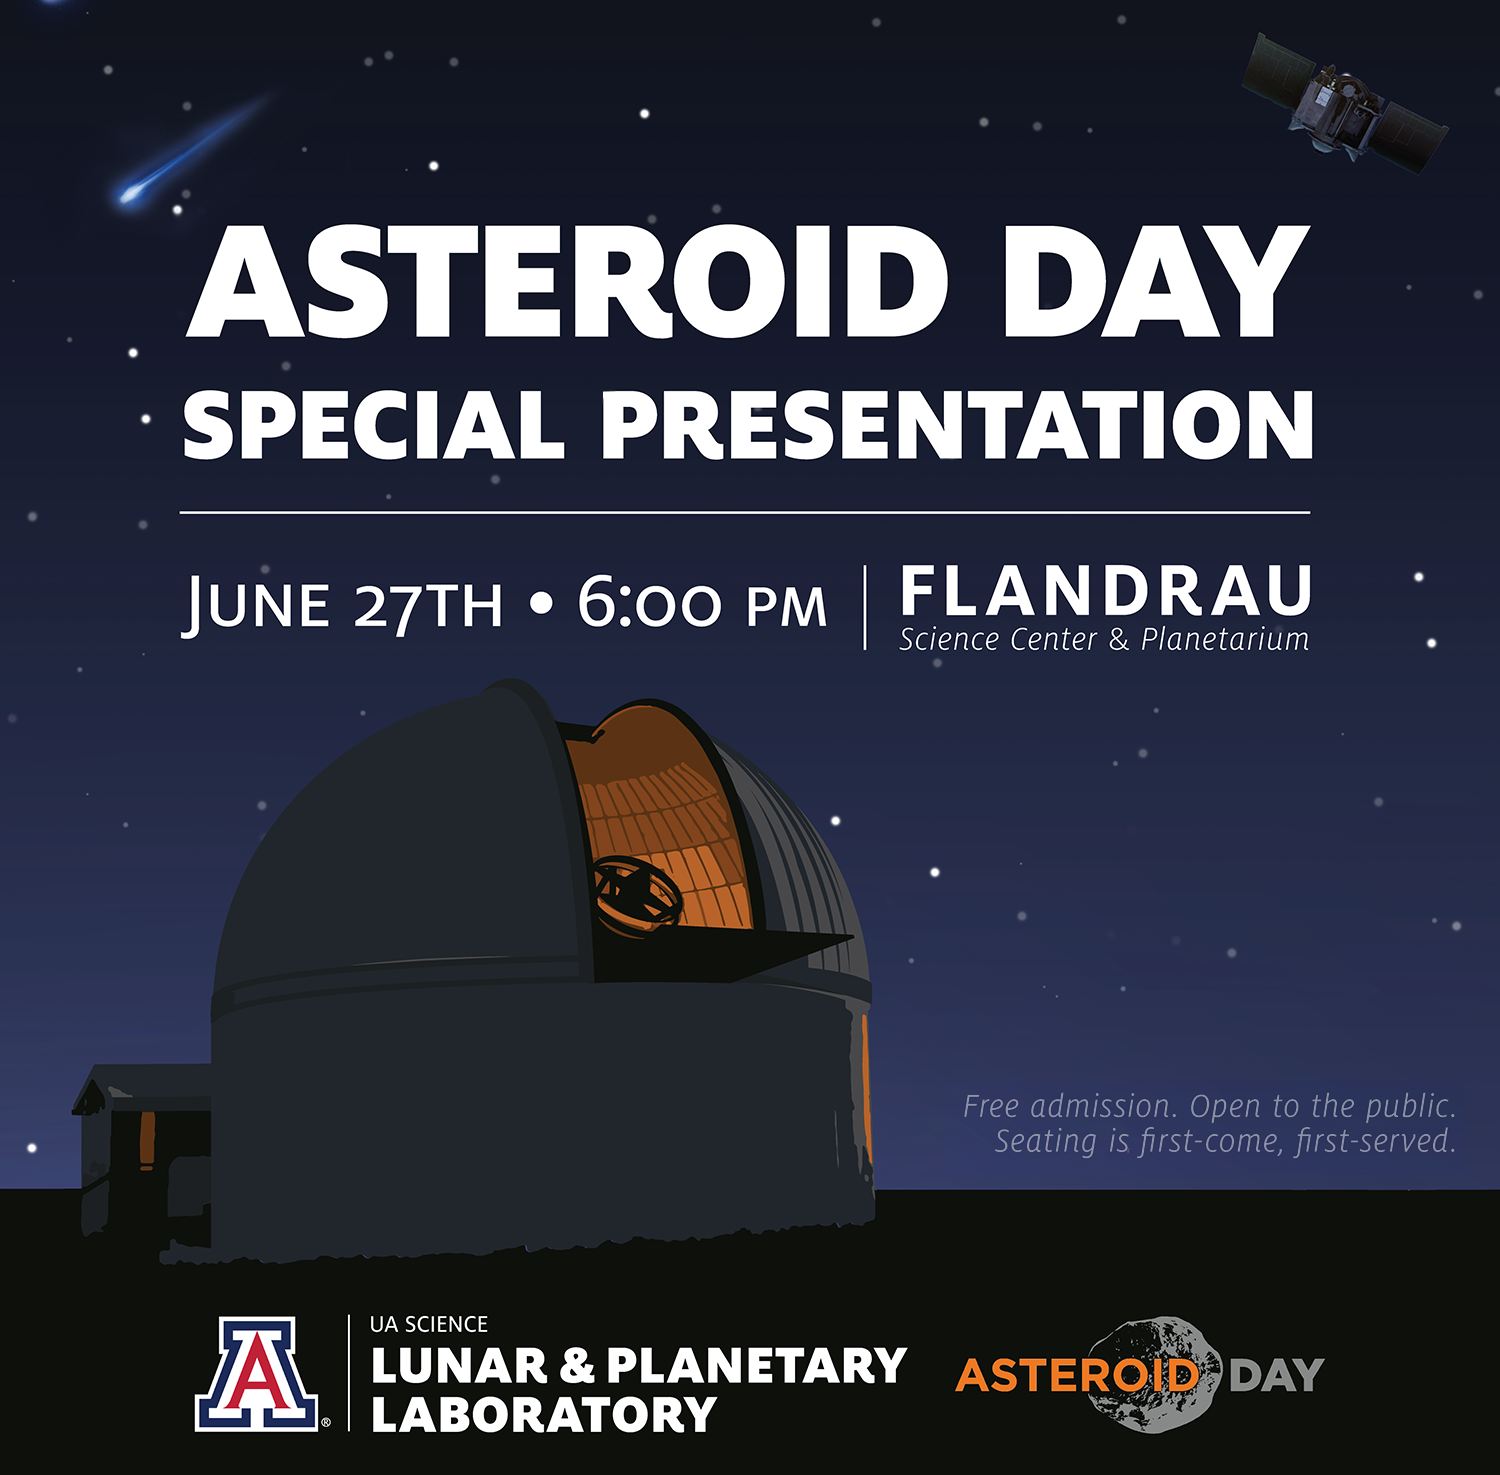 OSIRIS-REx Experts Featured in Asteroid Day Celebration